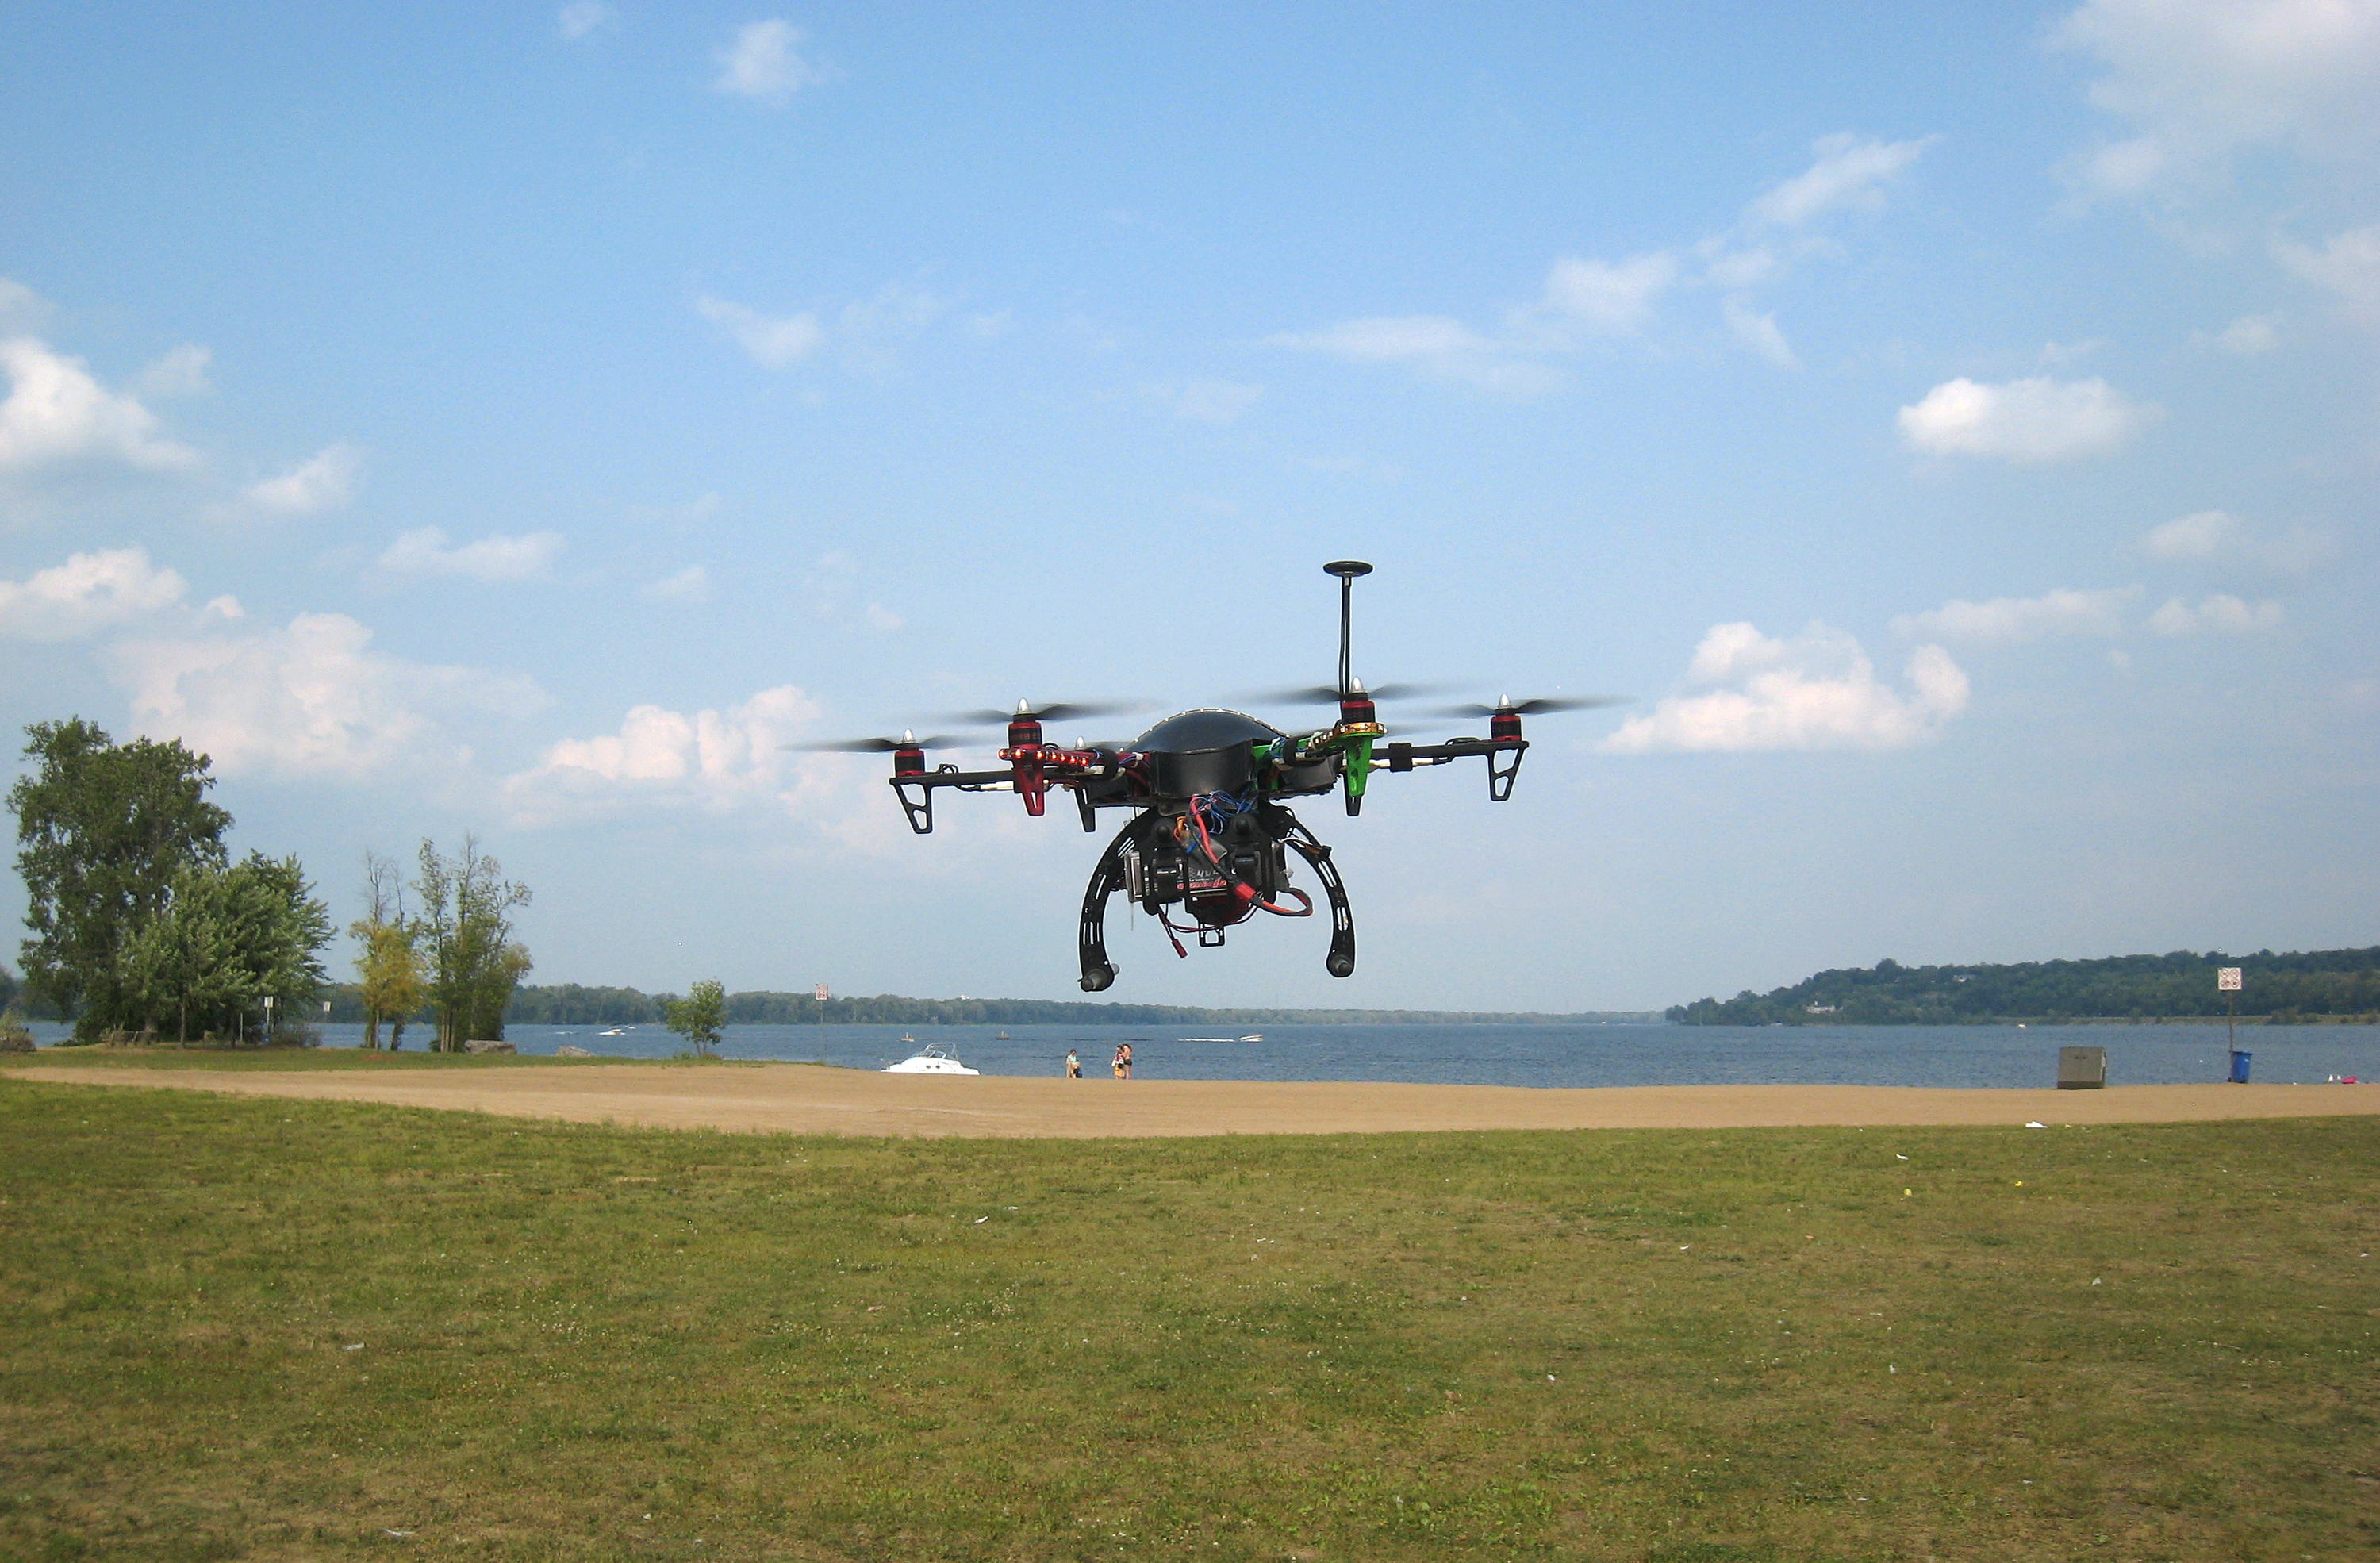 Meet the one and only drone pilot who has been caught for flying commercially without a license